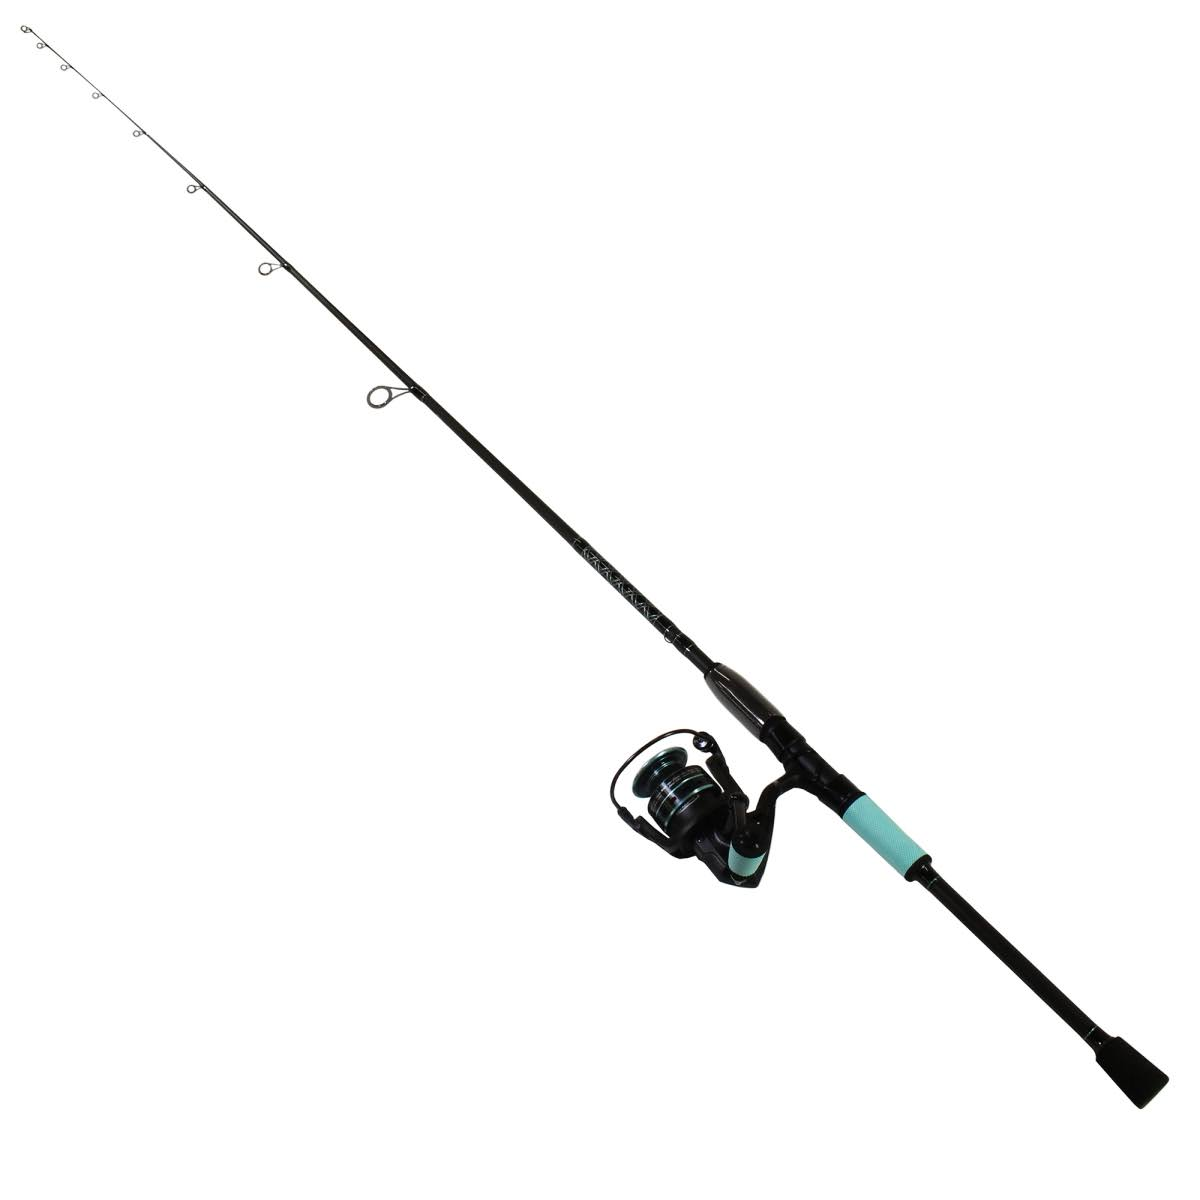 Penn Pursuit Iii Le Spinning Reel and Fishing Rod Combo